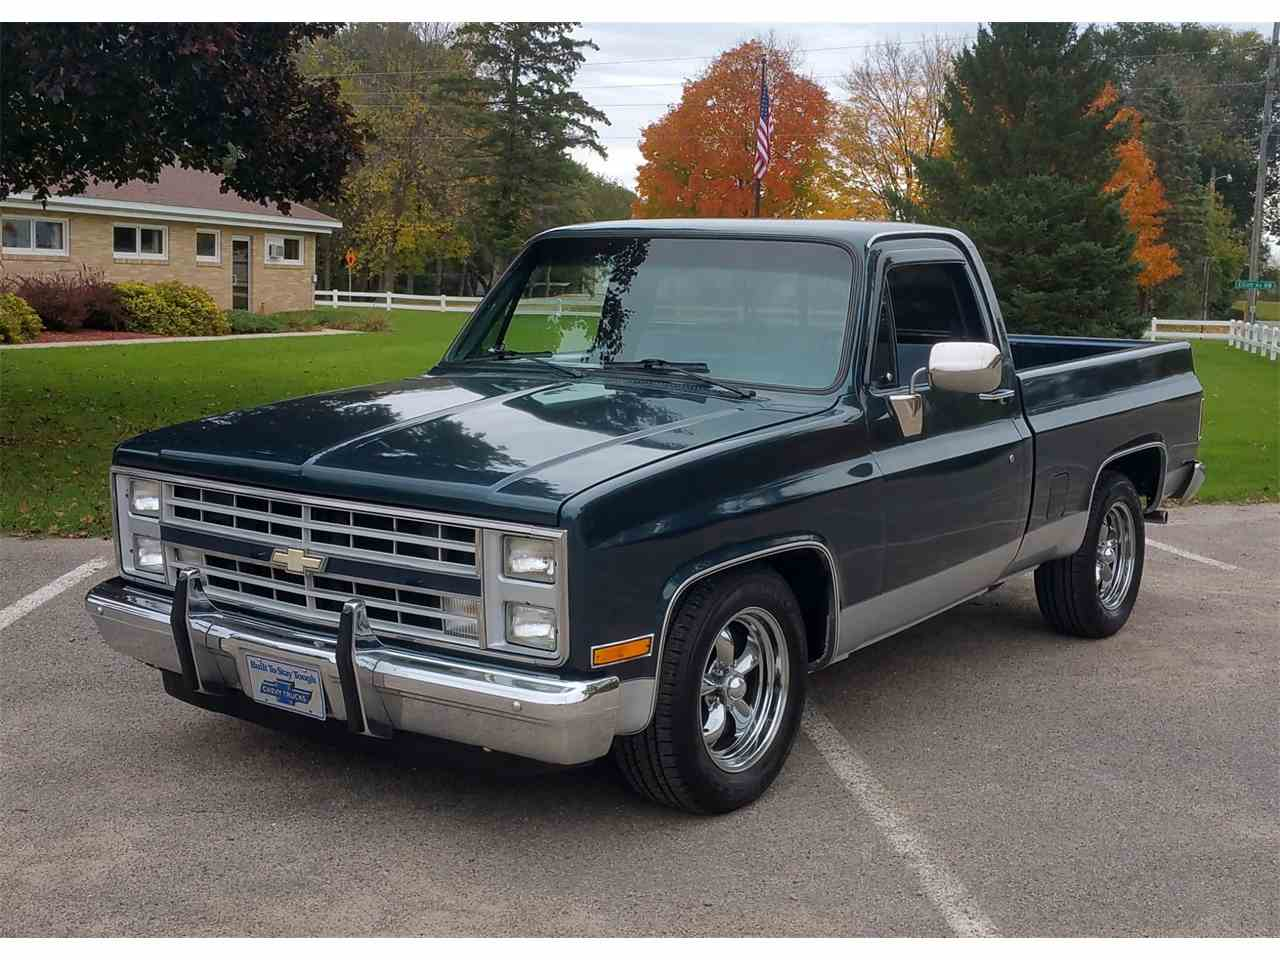 All Chevy c10 chevy : All Chevy » 1986 C10 Chevy - Old Chevy Photos Collection, All ...